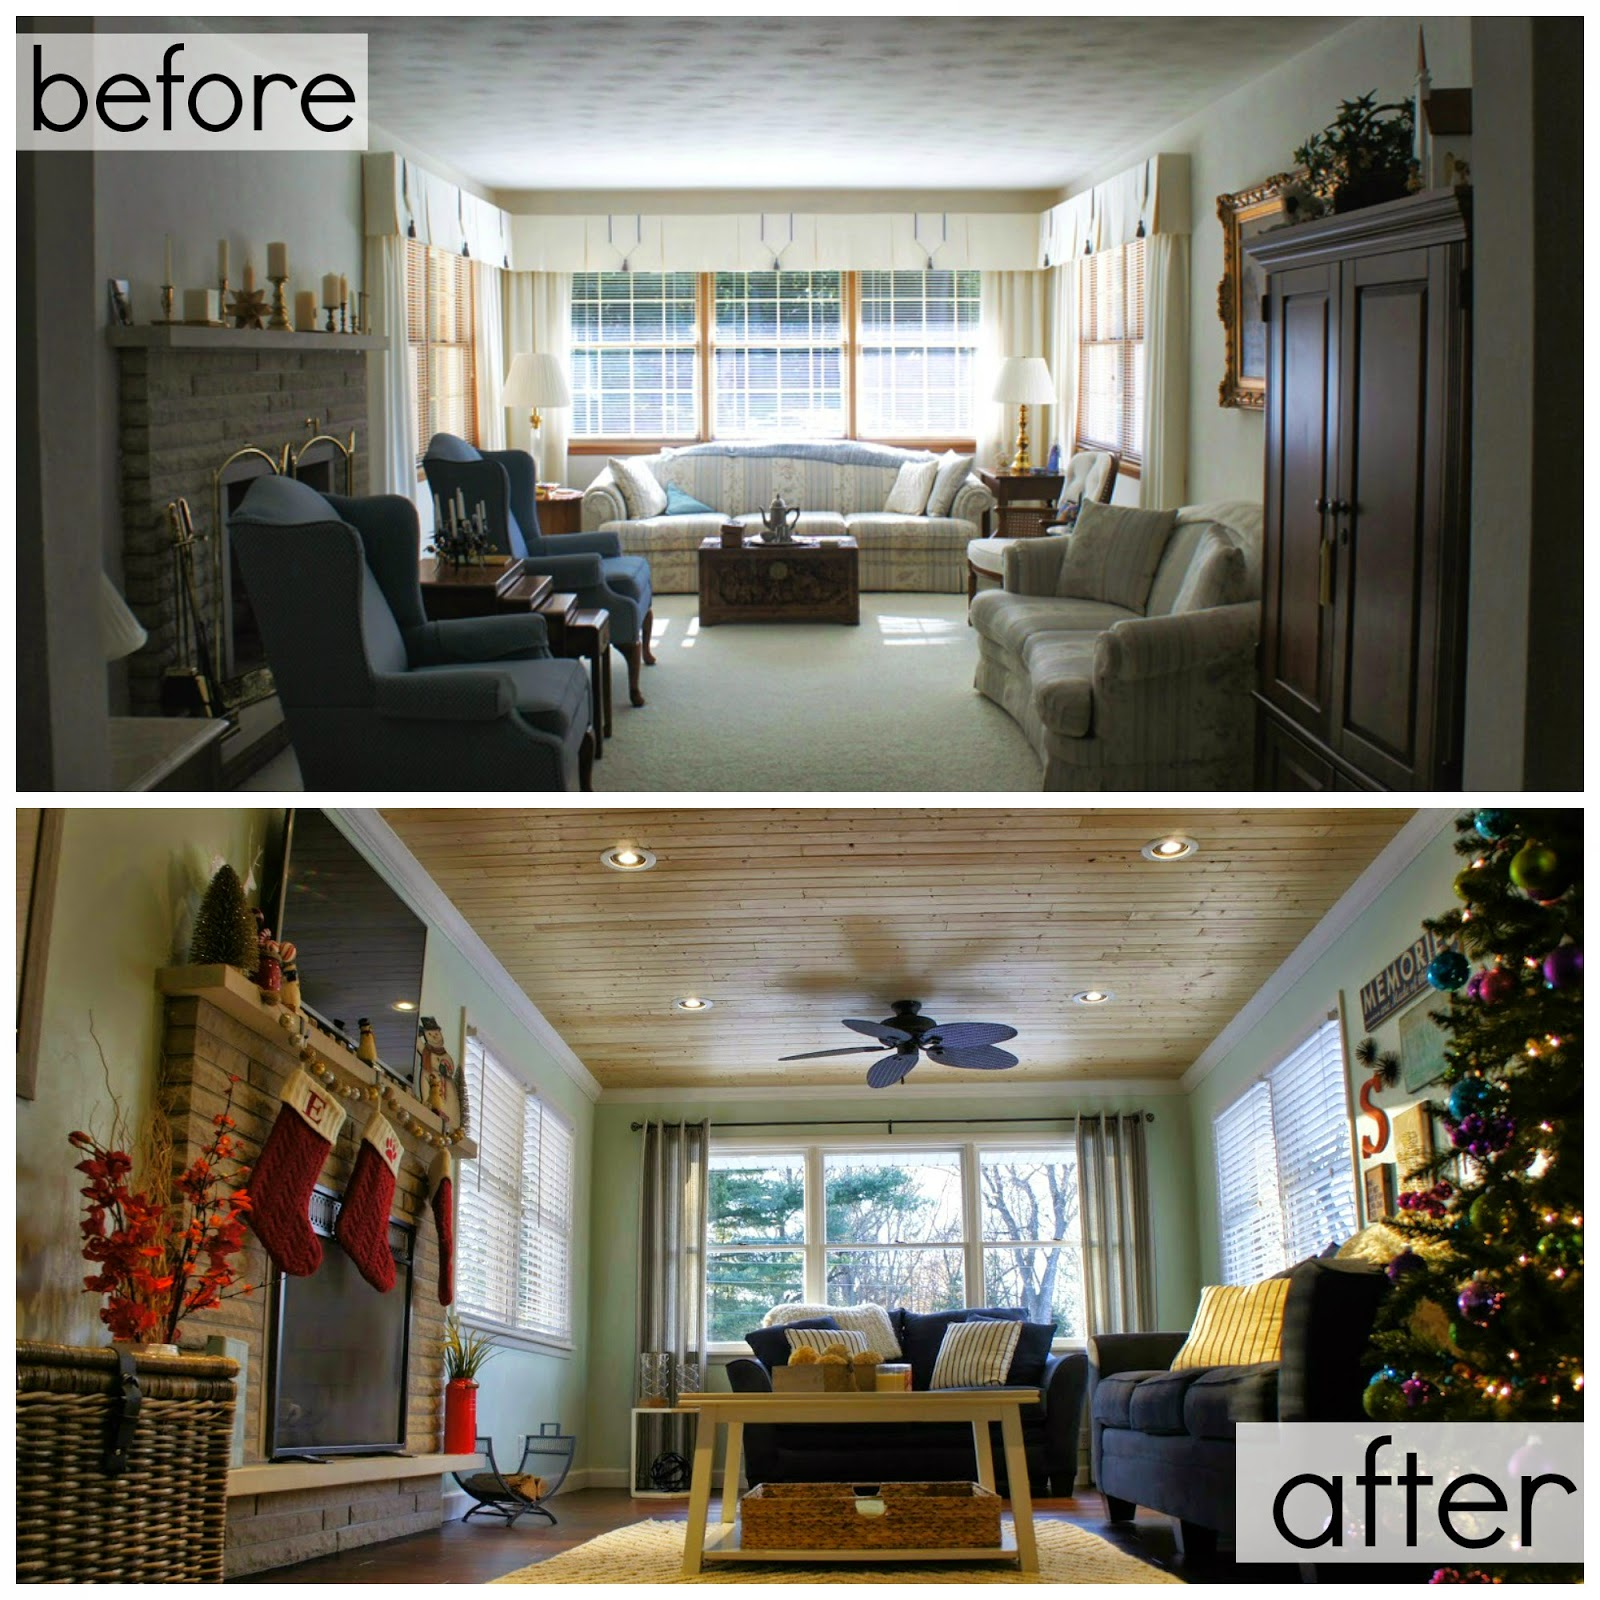 Its Time For Another Round Of Before And After Photos From Our New Ish House I Cant Believe We Have Already Lived Here 3 Months Every Day It Is